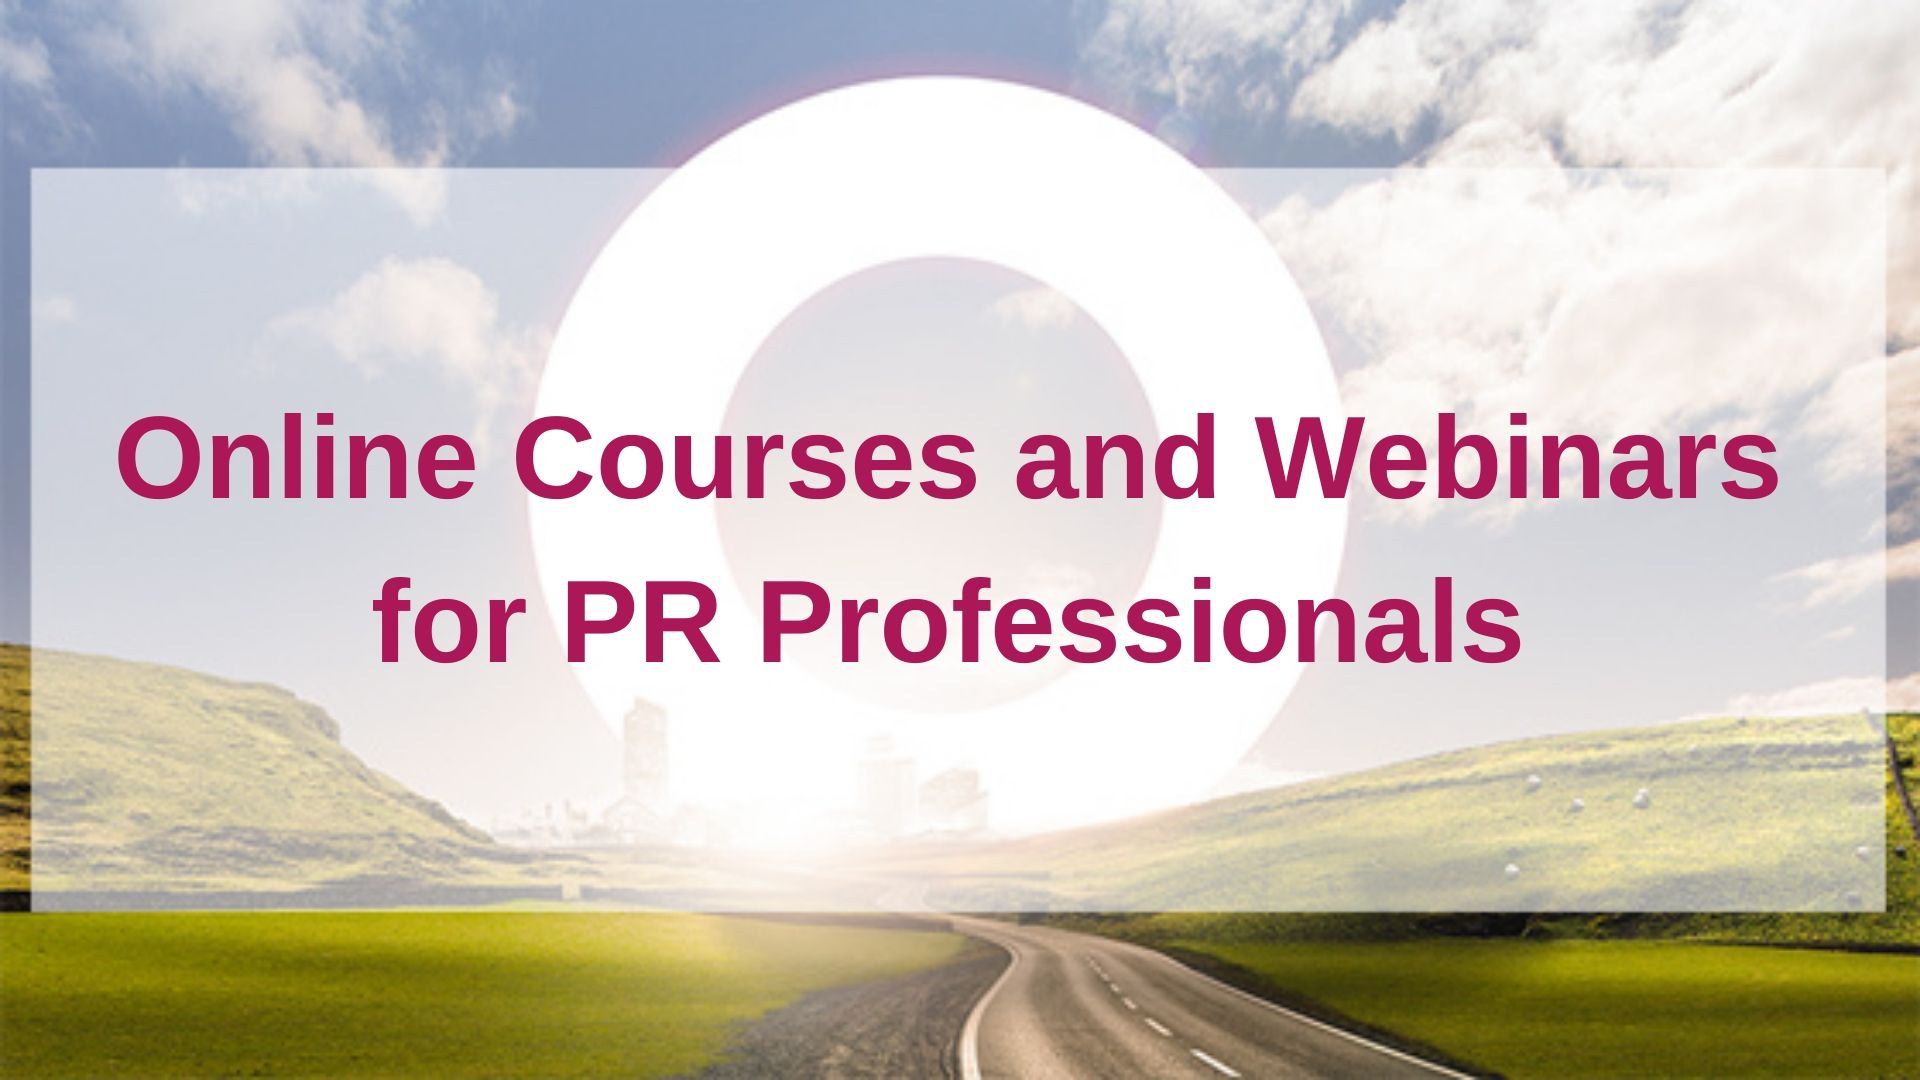 Online Courses For PR Professionals